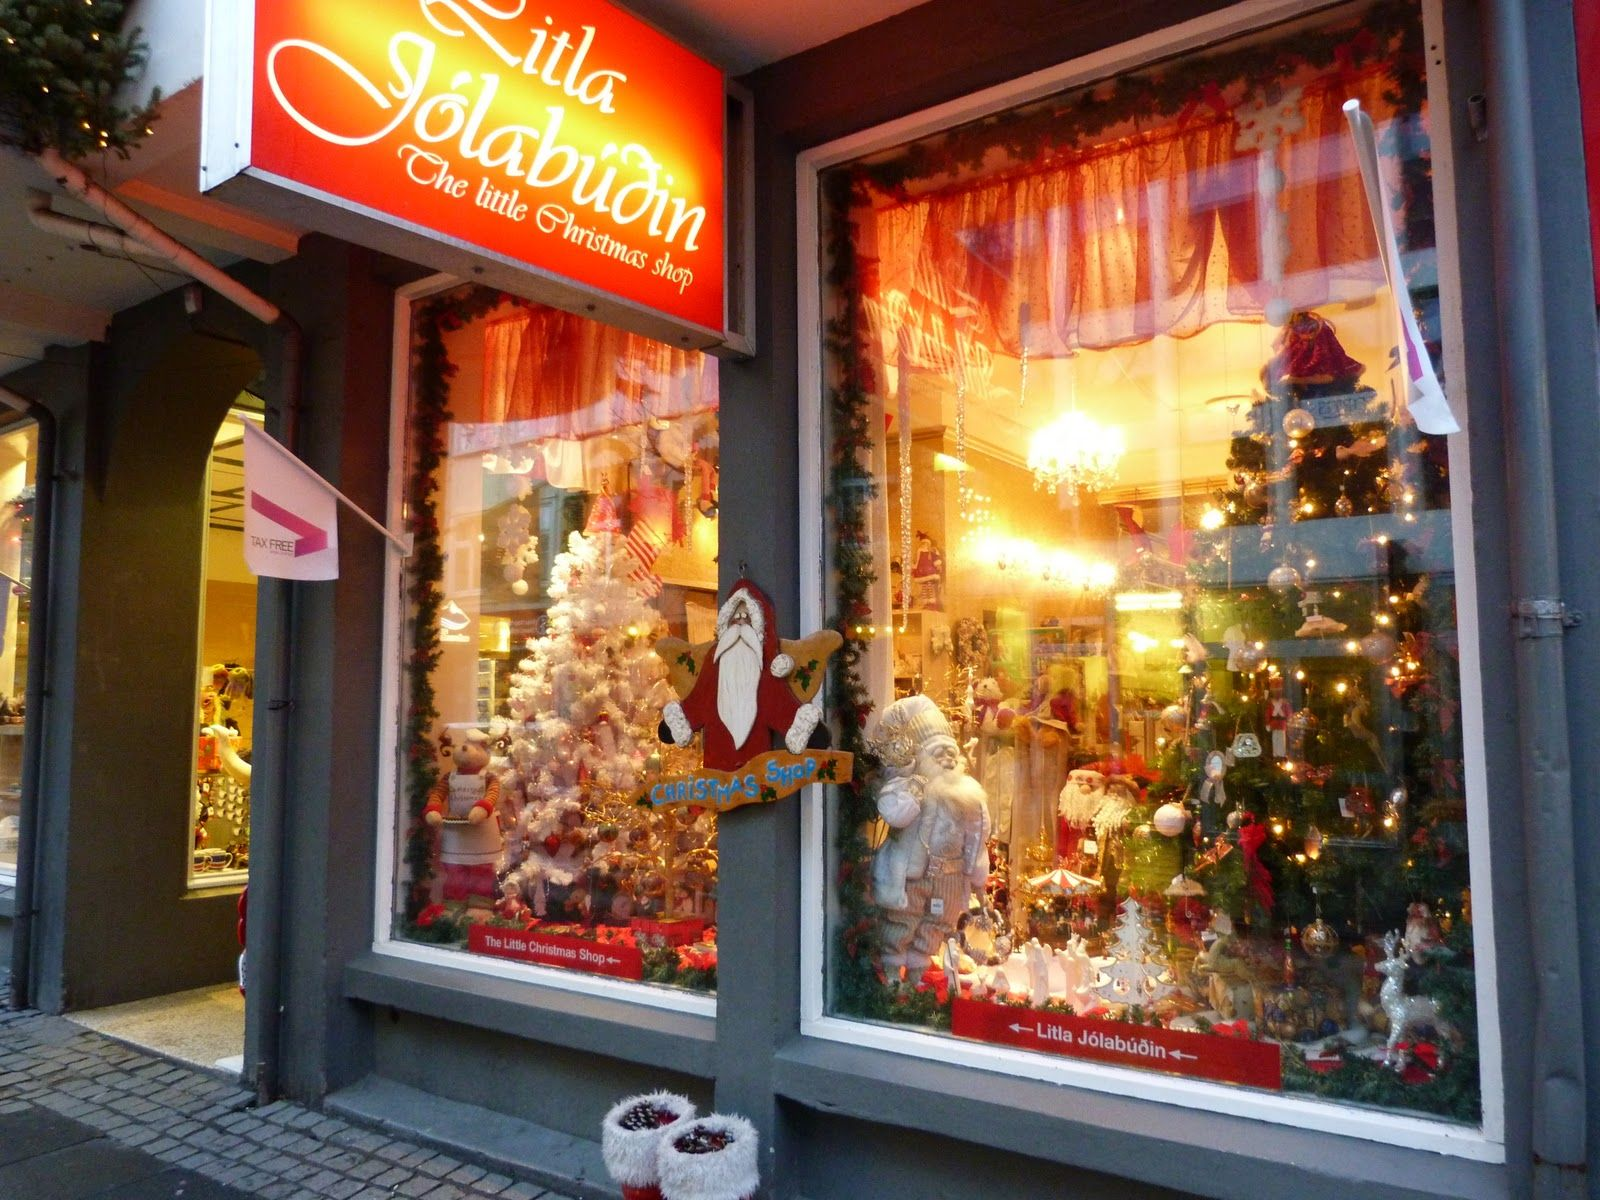 The Little Christmas Shop is open all year around in Iceland ...